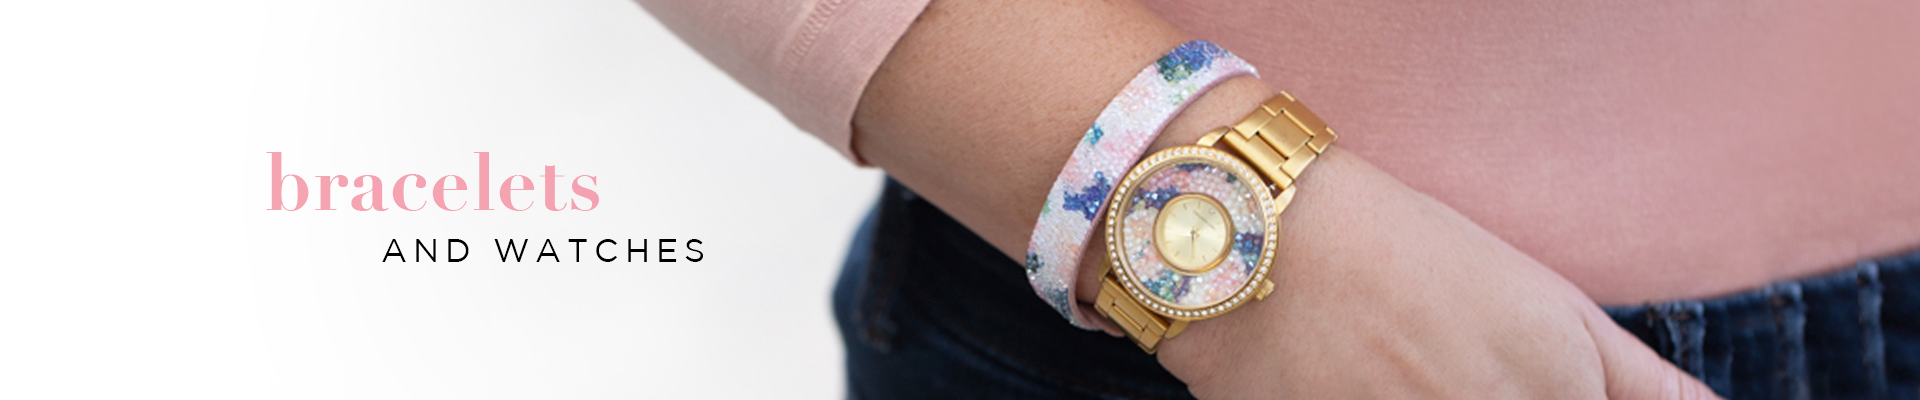 Bracelets + Watches banner